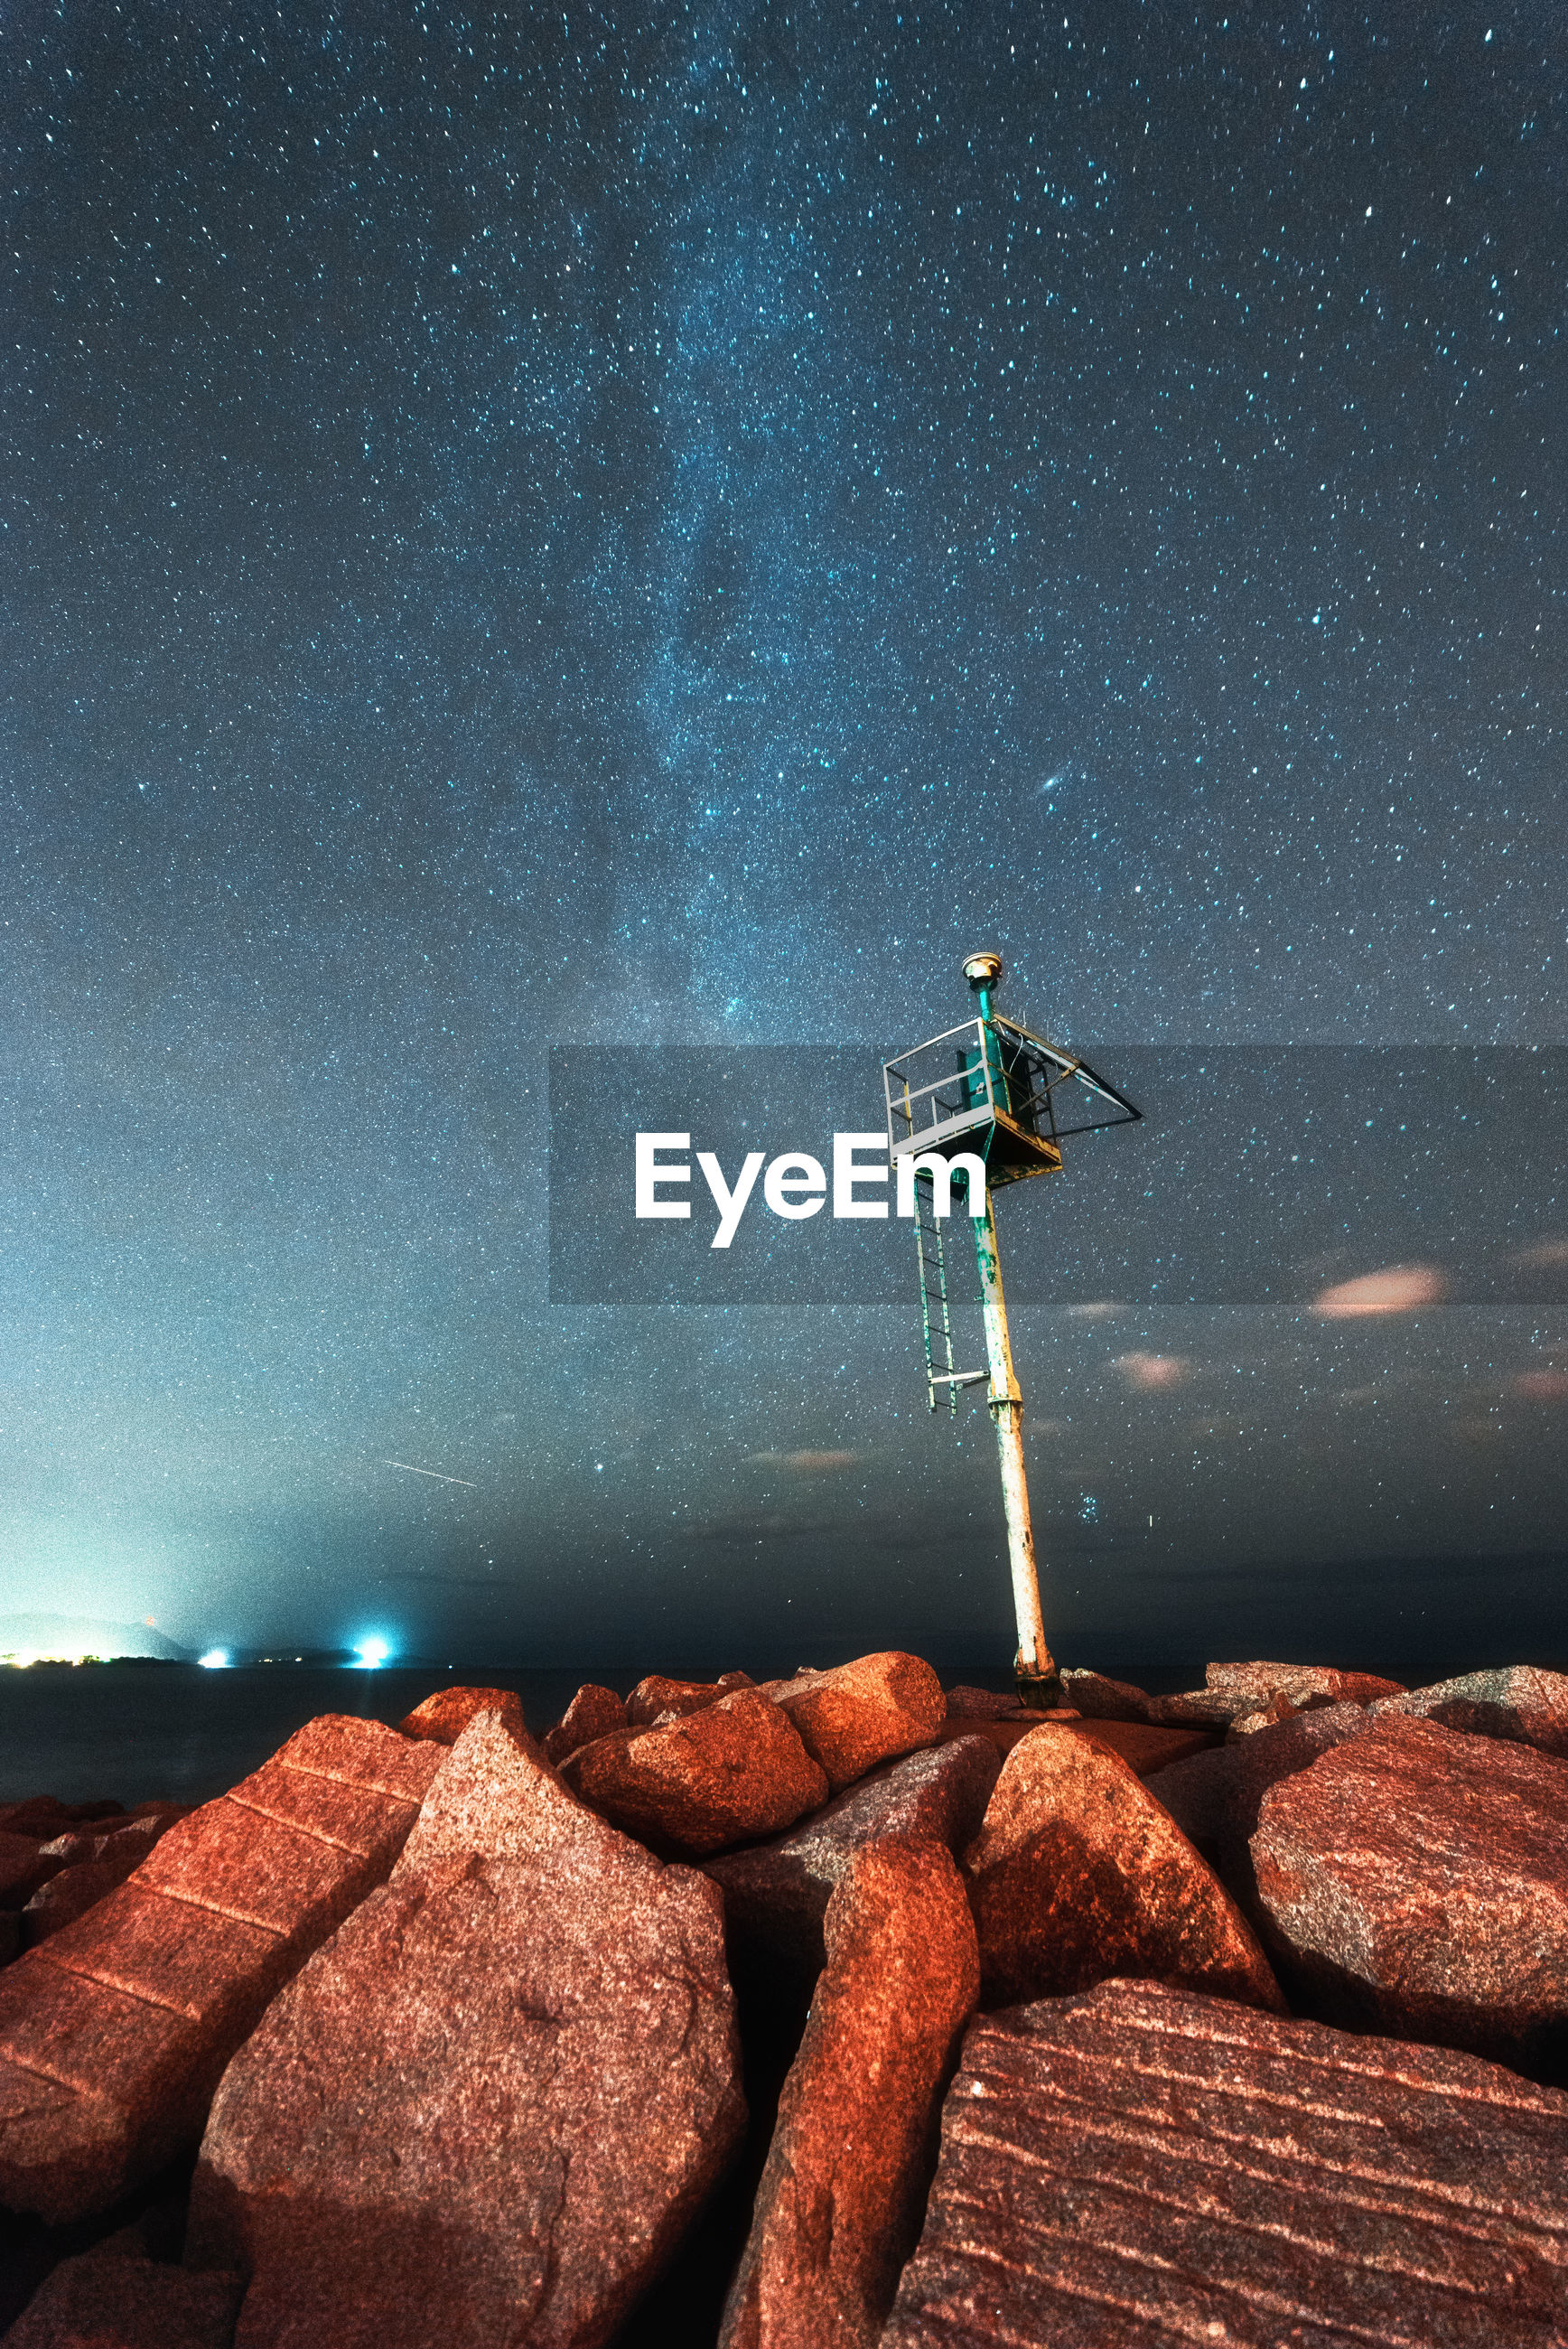 LOW ANGLE VIEW OF ROCKS AGAINST STAR FIELD AT NIGHT